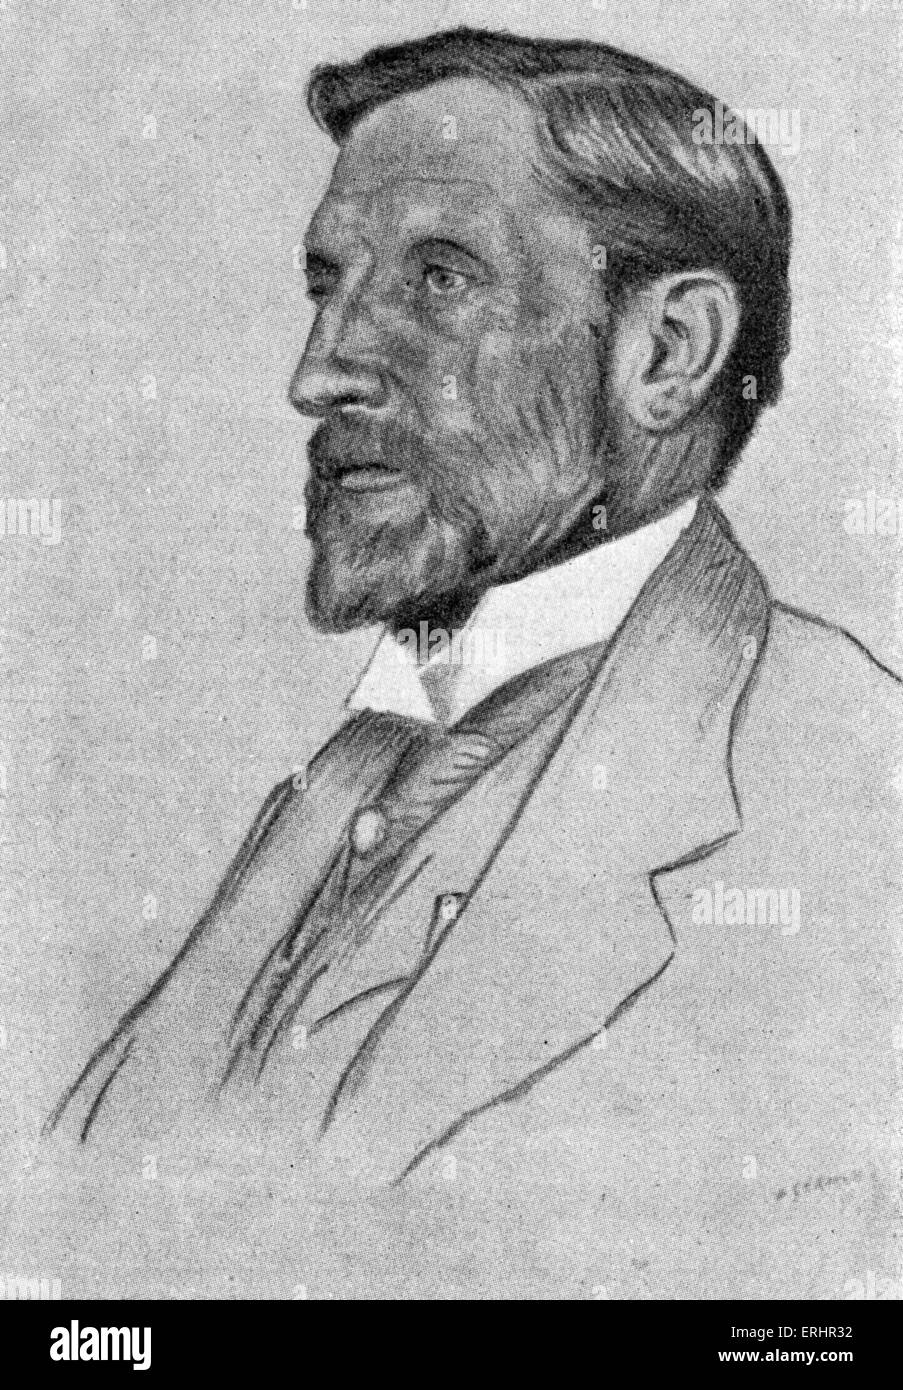 Rider Haggard - writer of adventure novels set in exotic locations, predominantly Africa: 22 June 1856 –  14 May - Stock Image